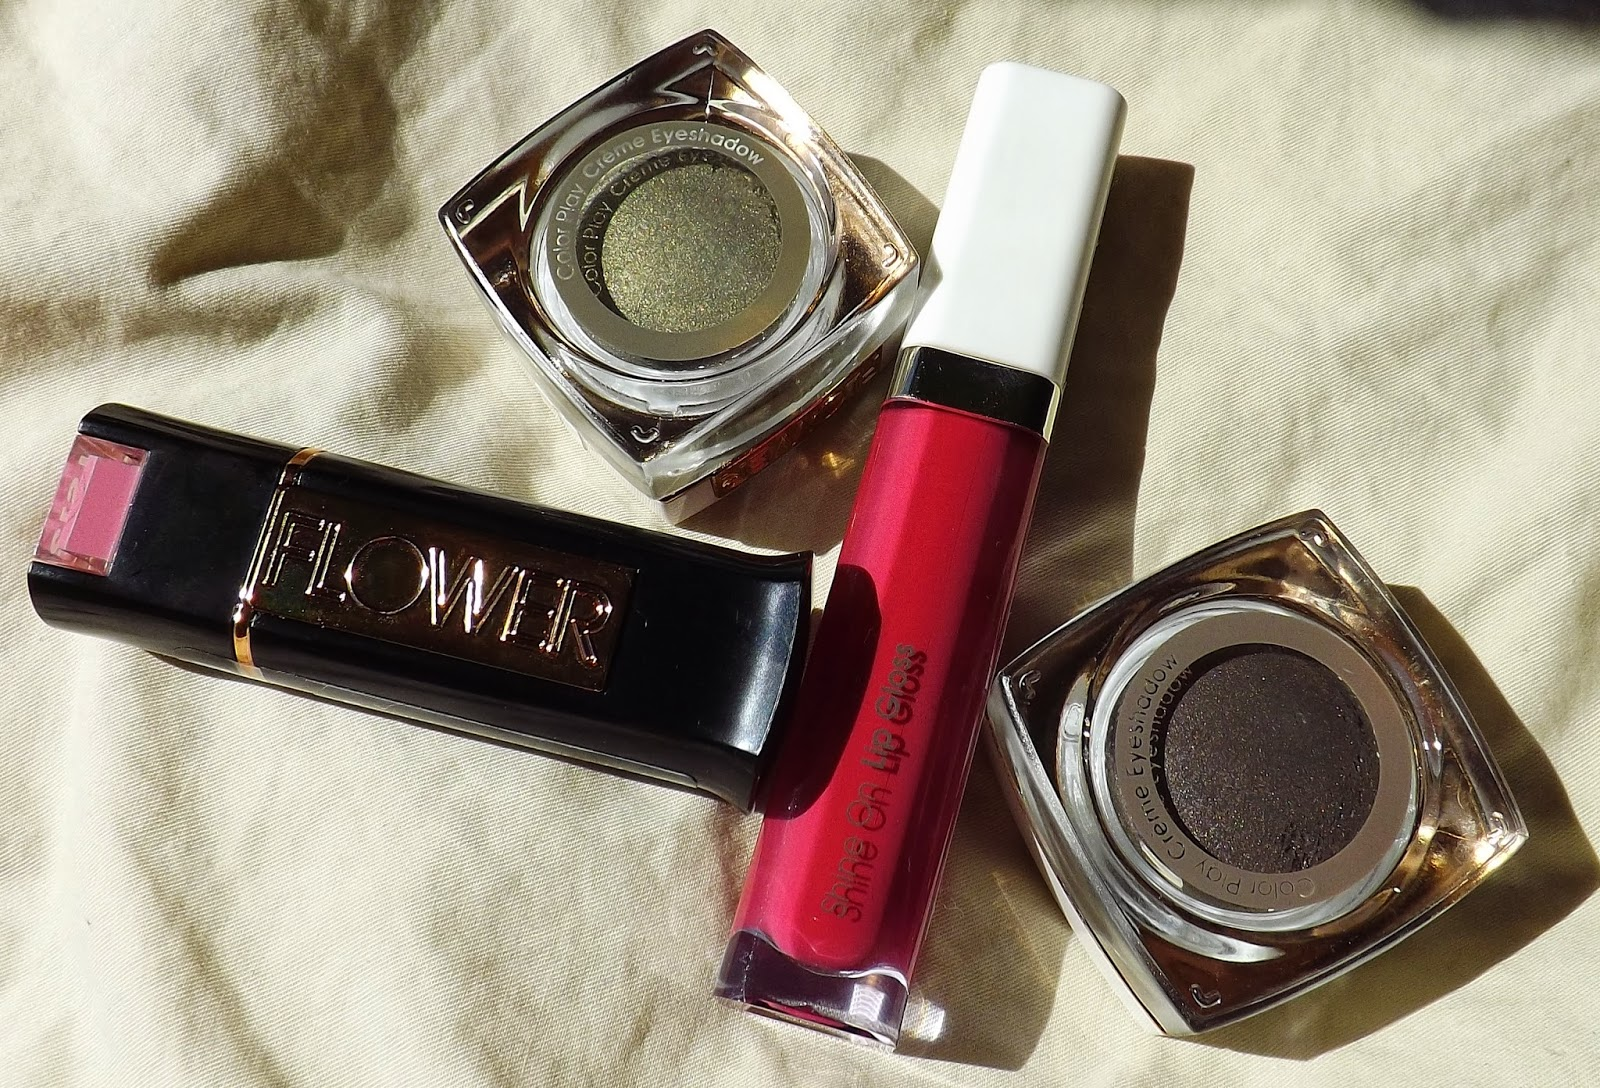 Naesays flower cosmetics review swatches flower cosmetics review swatches izmirmasajfo